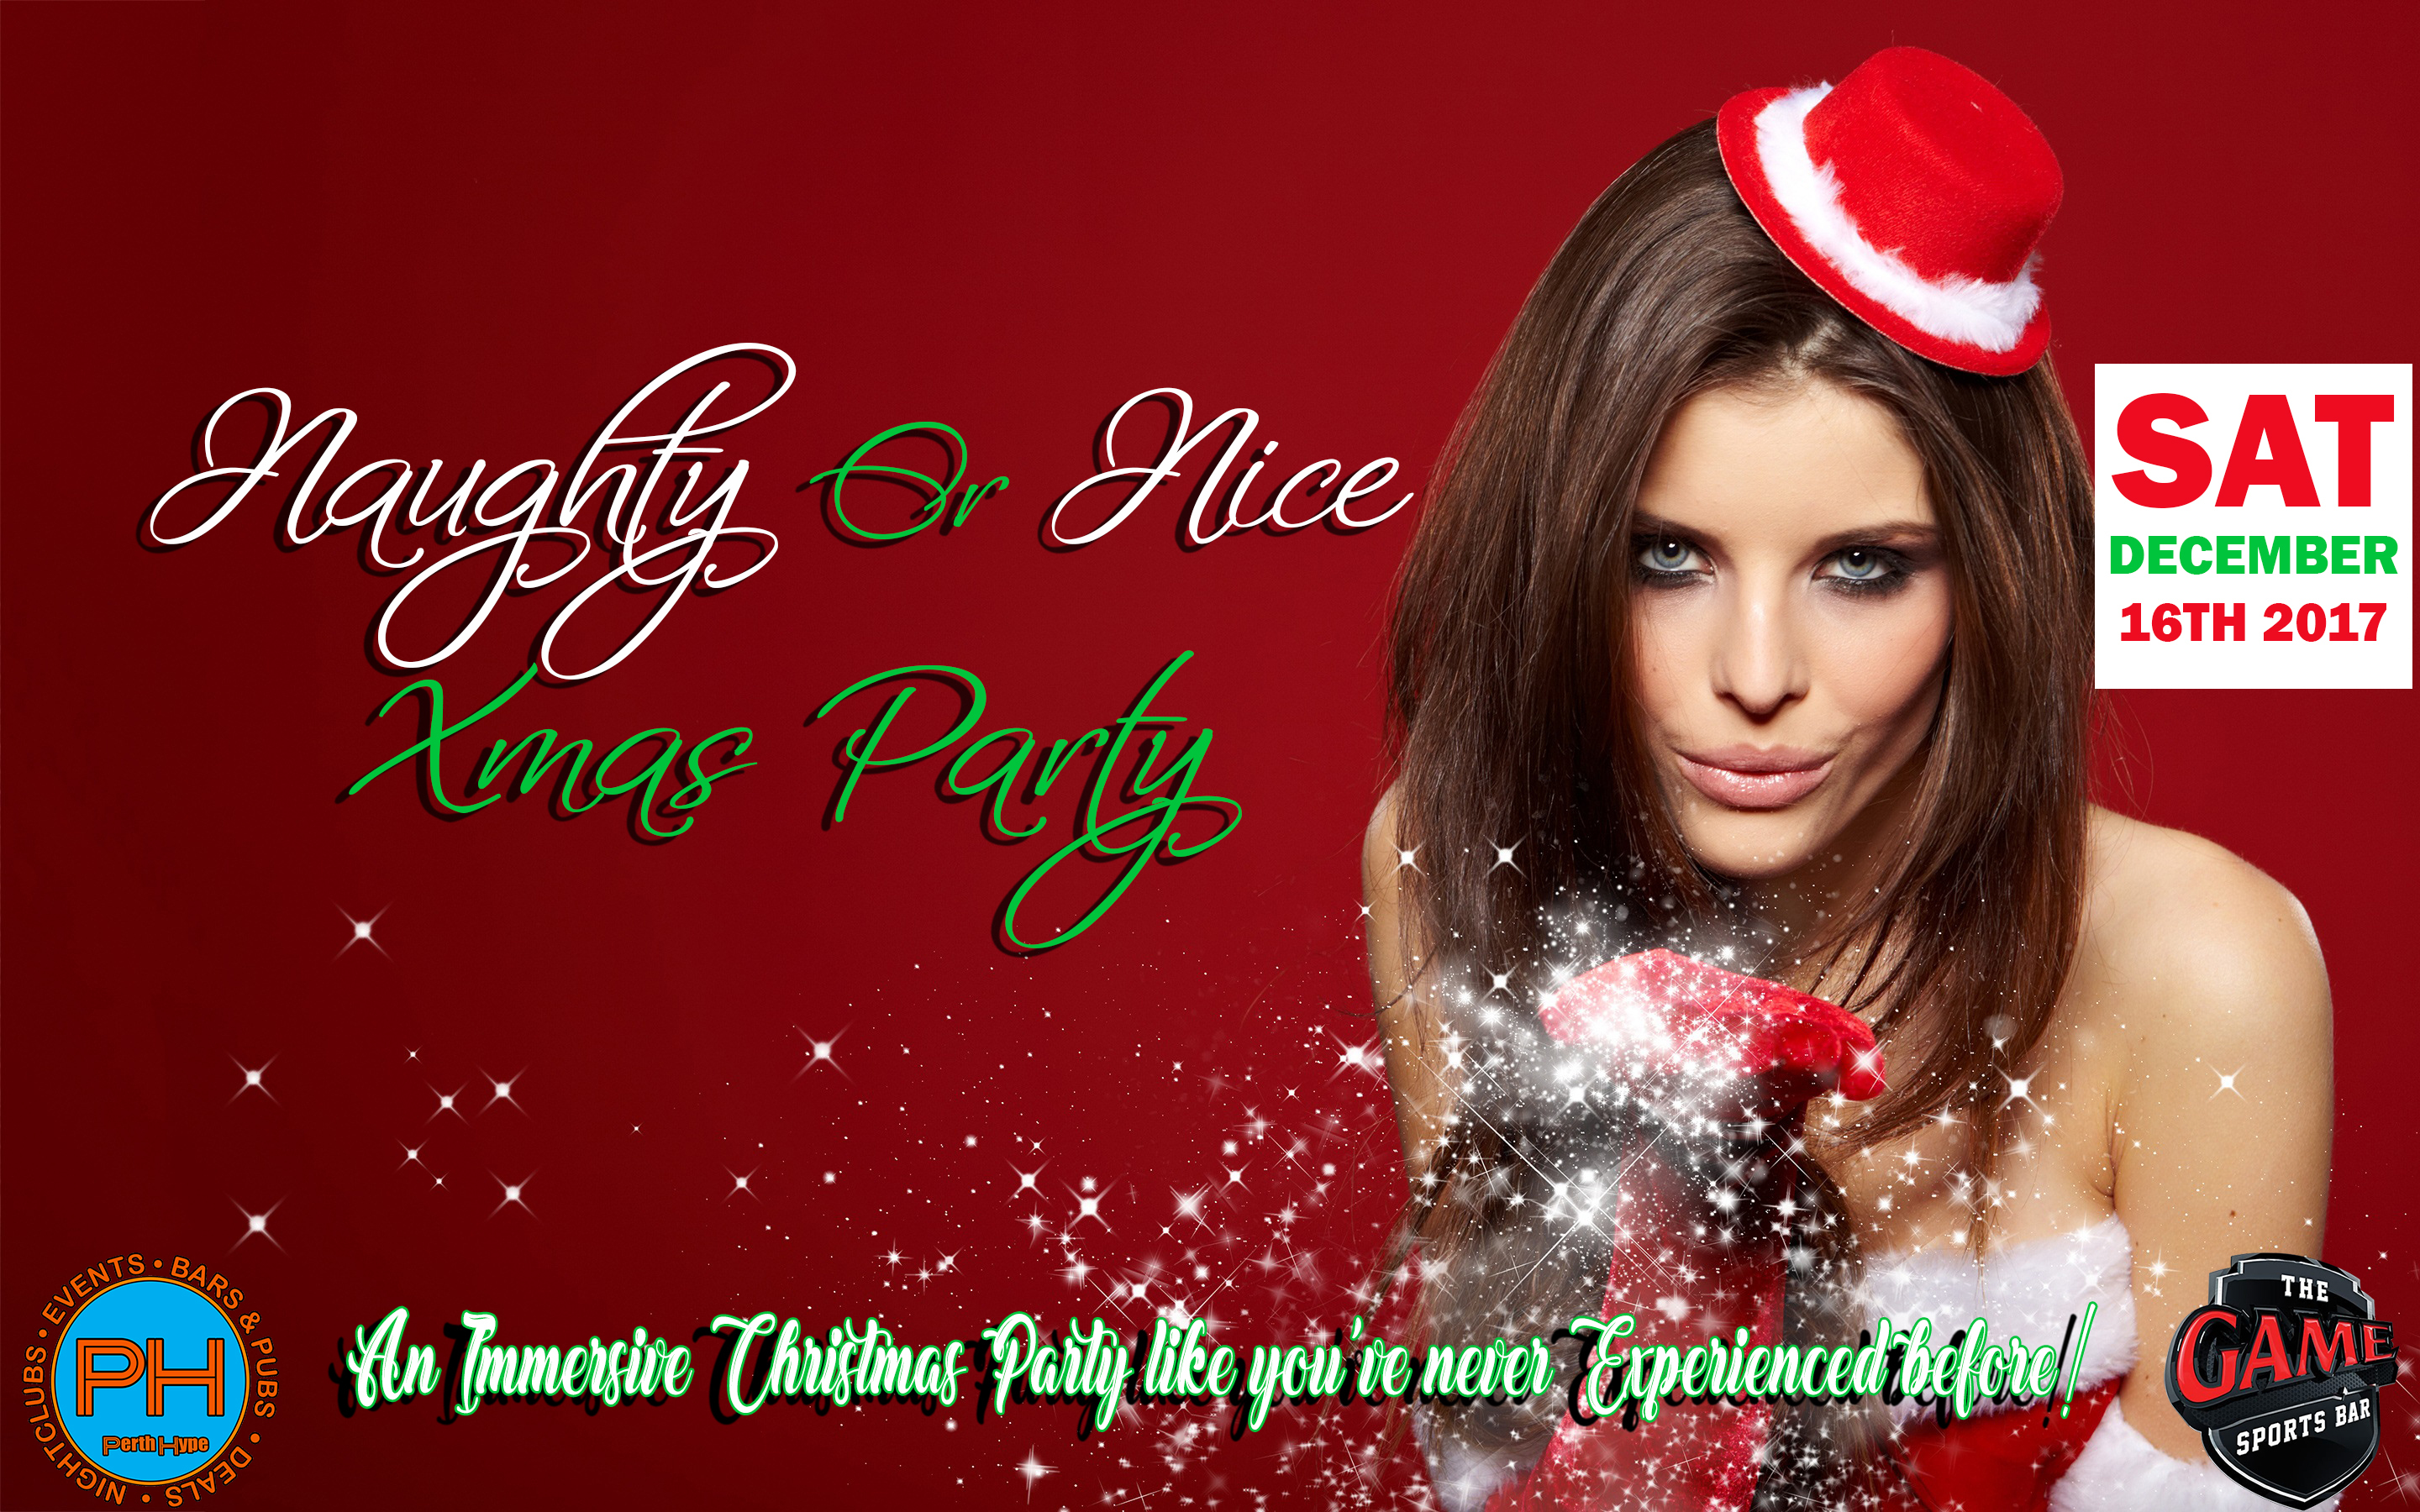 Naughty or Nice Xmas Party - Hosted by Perth Hype - Perth